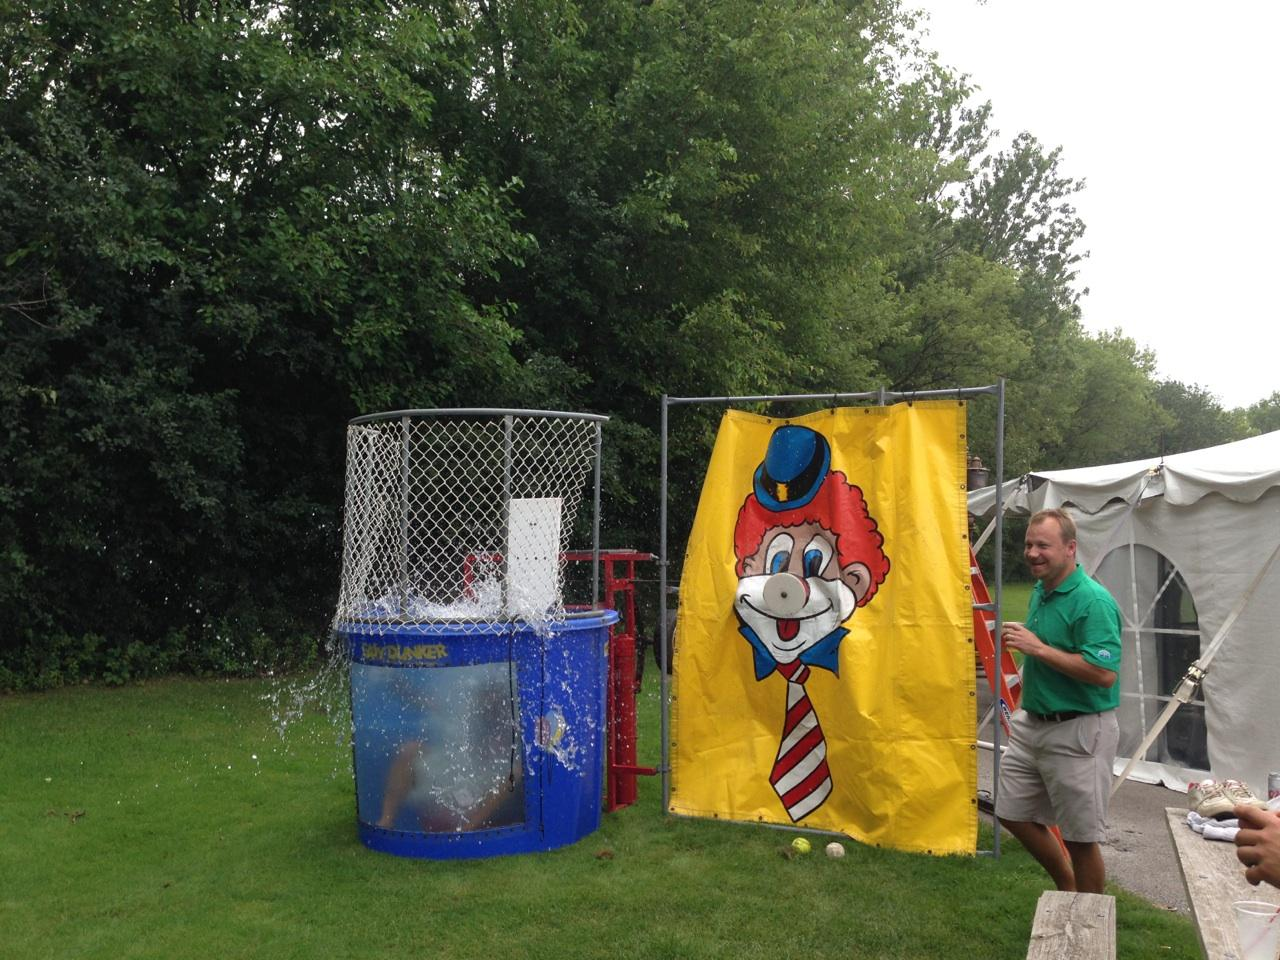 Jered gets dunked AFTER